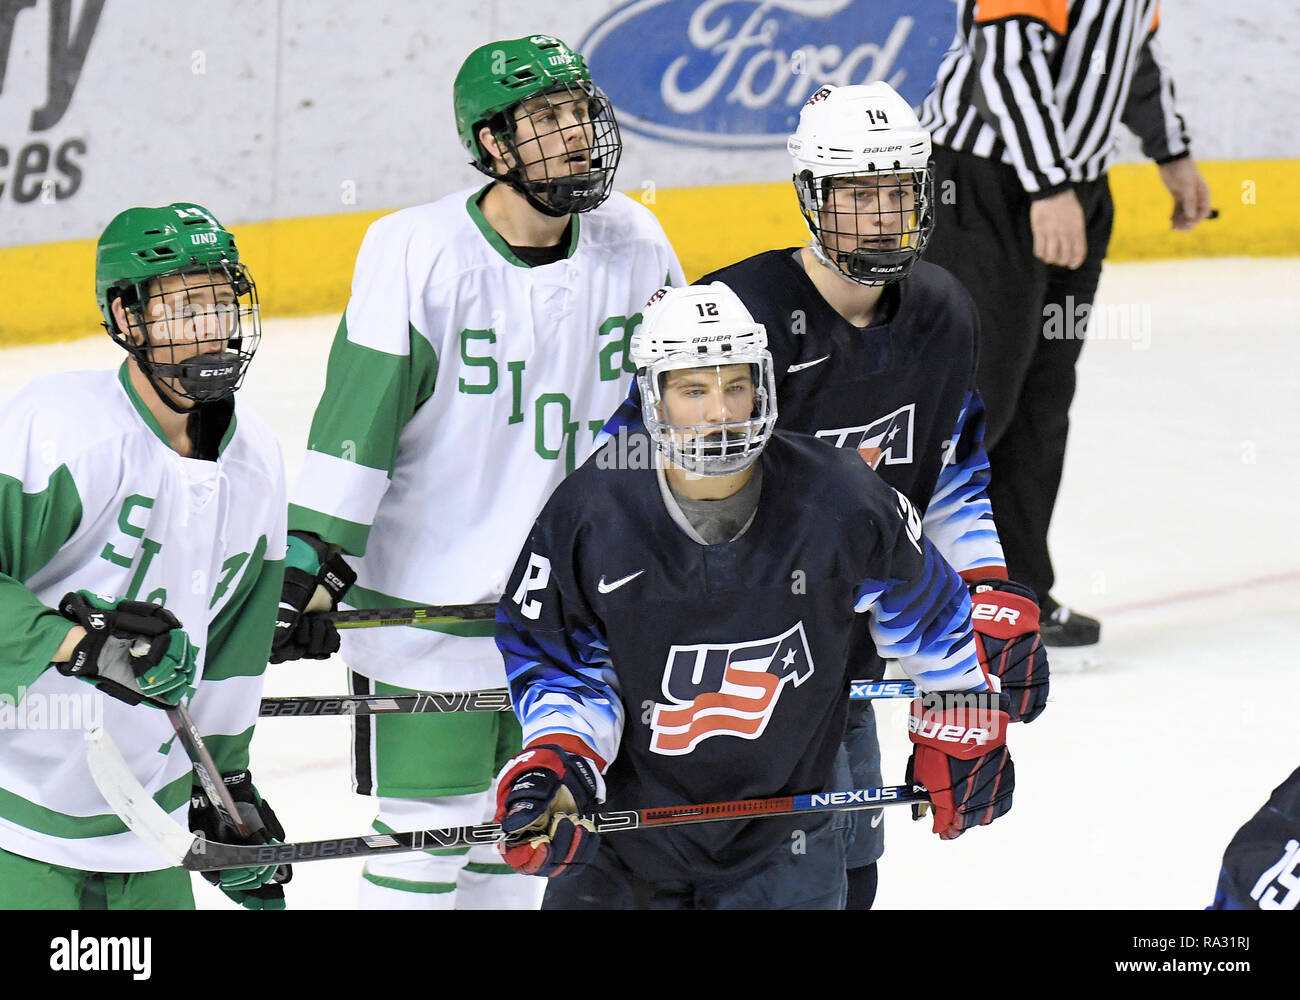 December 29, 2018 North Dakota Fighting Hawks forwards Cole Smith (26) and Jasper Weatherby (14) and U.S. National Under 18 team players Ryder Rolston (12) and Judd Caufield (14) watch the last few seconds tick off the clock during a exhibition men's college hockey game between the U.S. National Under-18 team and the University of North Dakota Fighting Hawks at Ralph Engelstad Arena in Grand Forks, ND. North Dakota was wearing replica 1959 team jerseys. UND won 6-2. Photo by Russell Hons/CSM Stock Photo